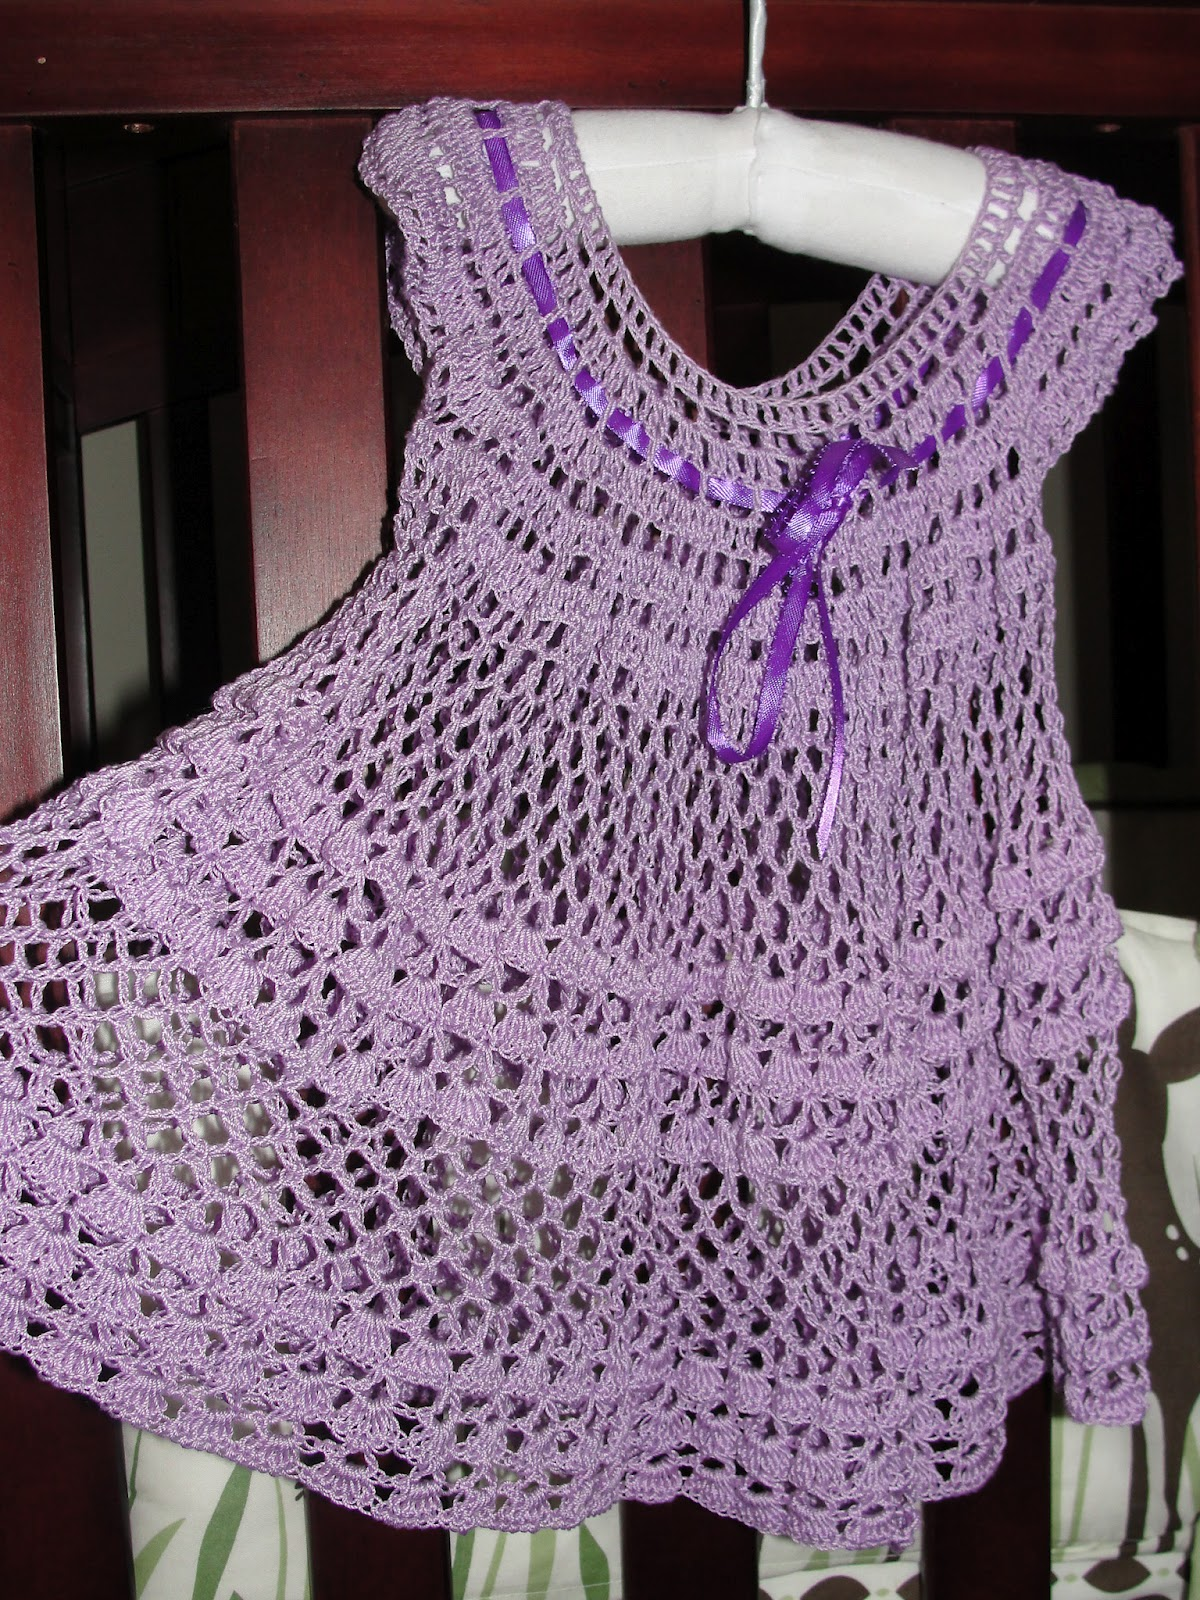 How To Crochet Baby Dress Pattern : In Karapoozville: Crochet summer baby dress